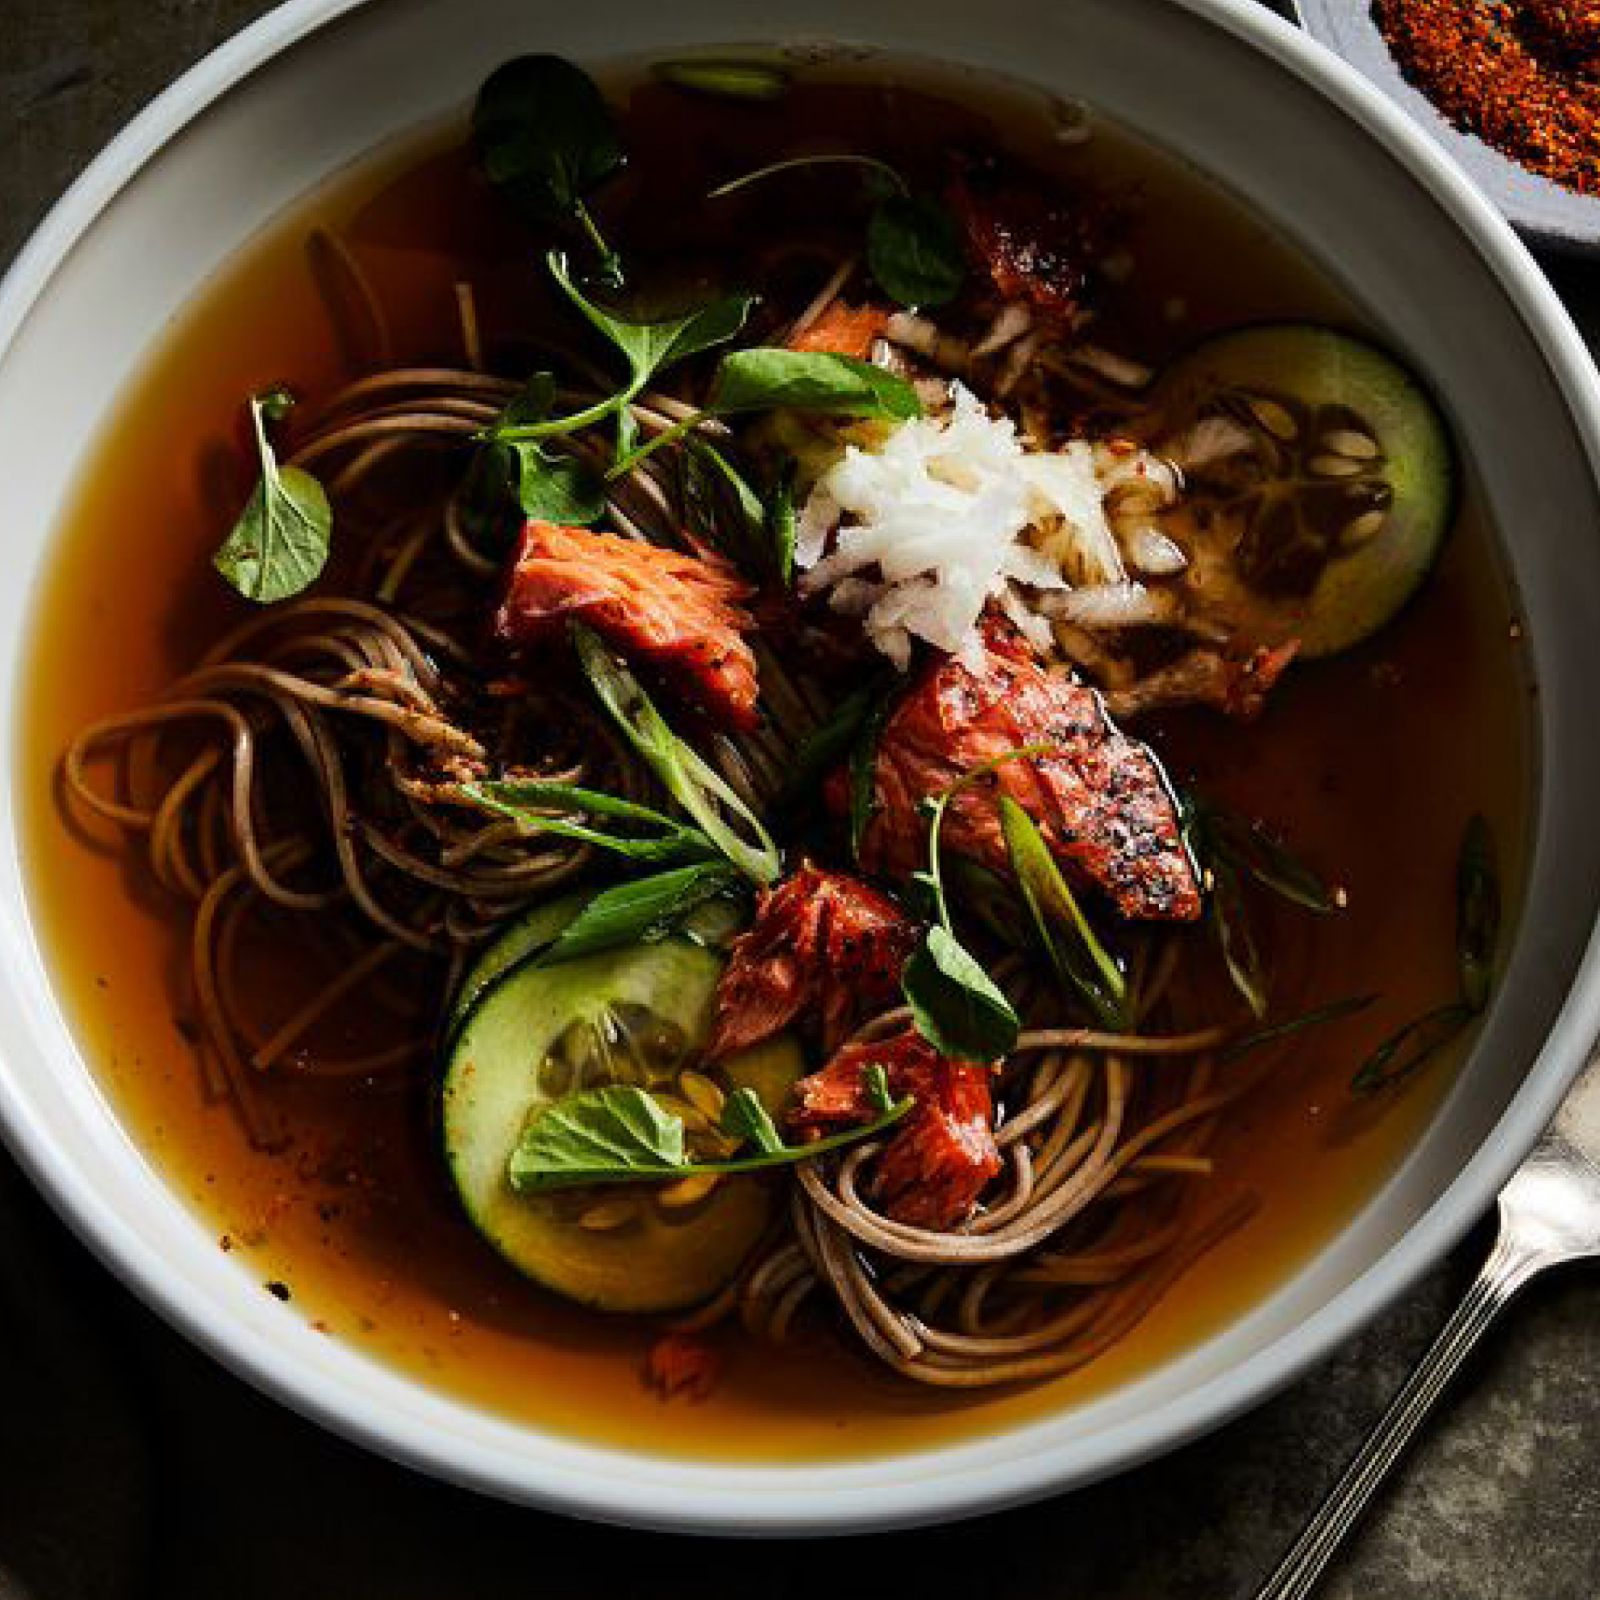 Hot_soba_noodle_soup_with_salmoncucumber_and_tagarashi.jpg